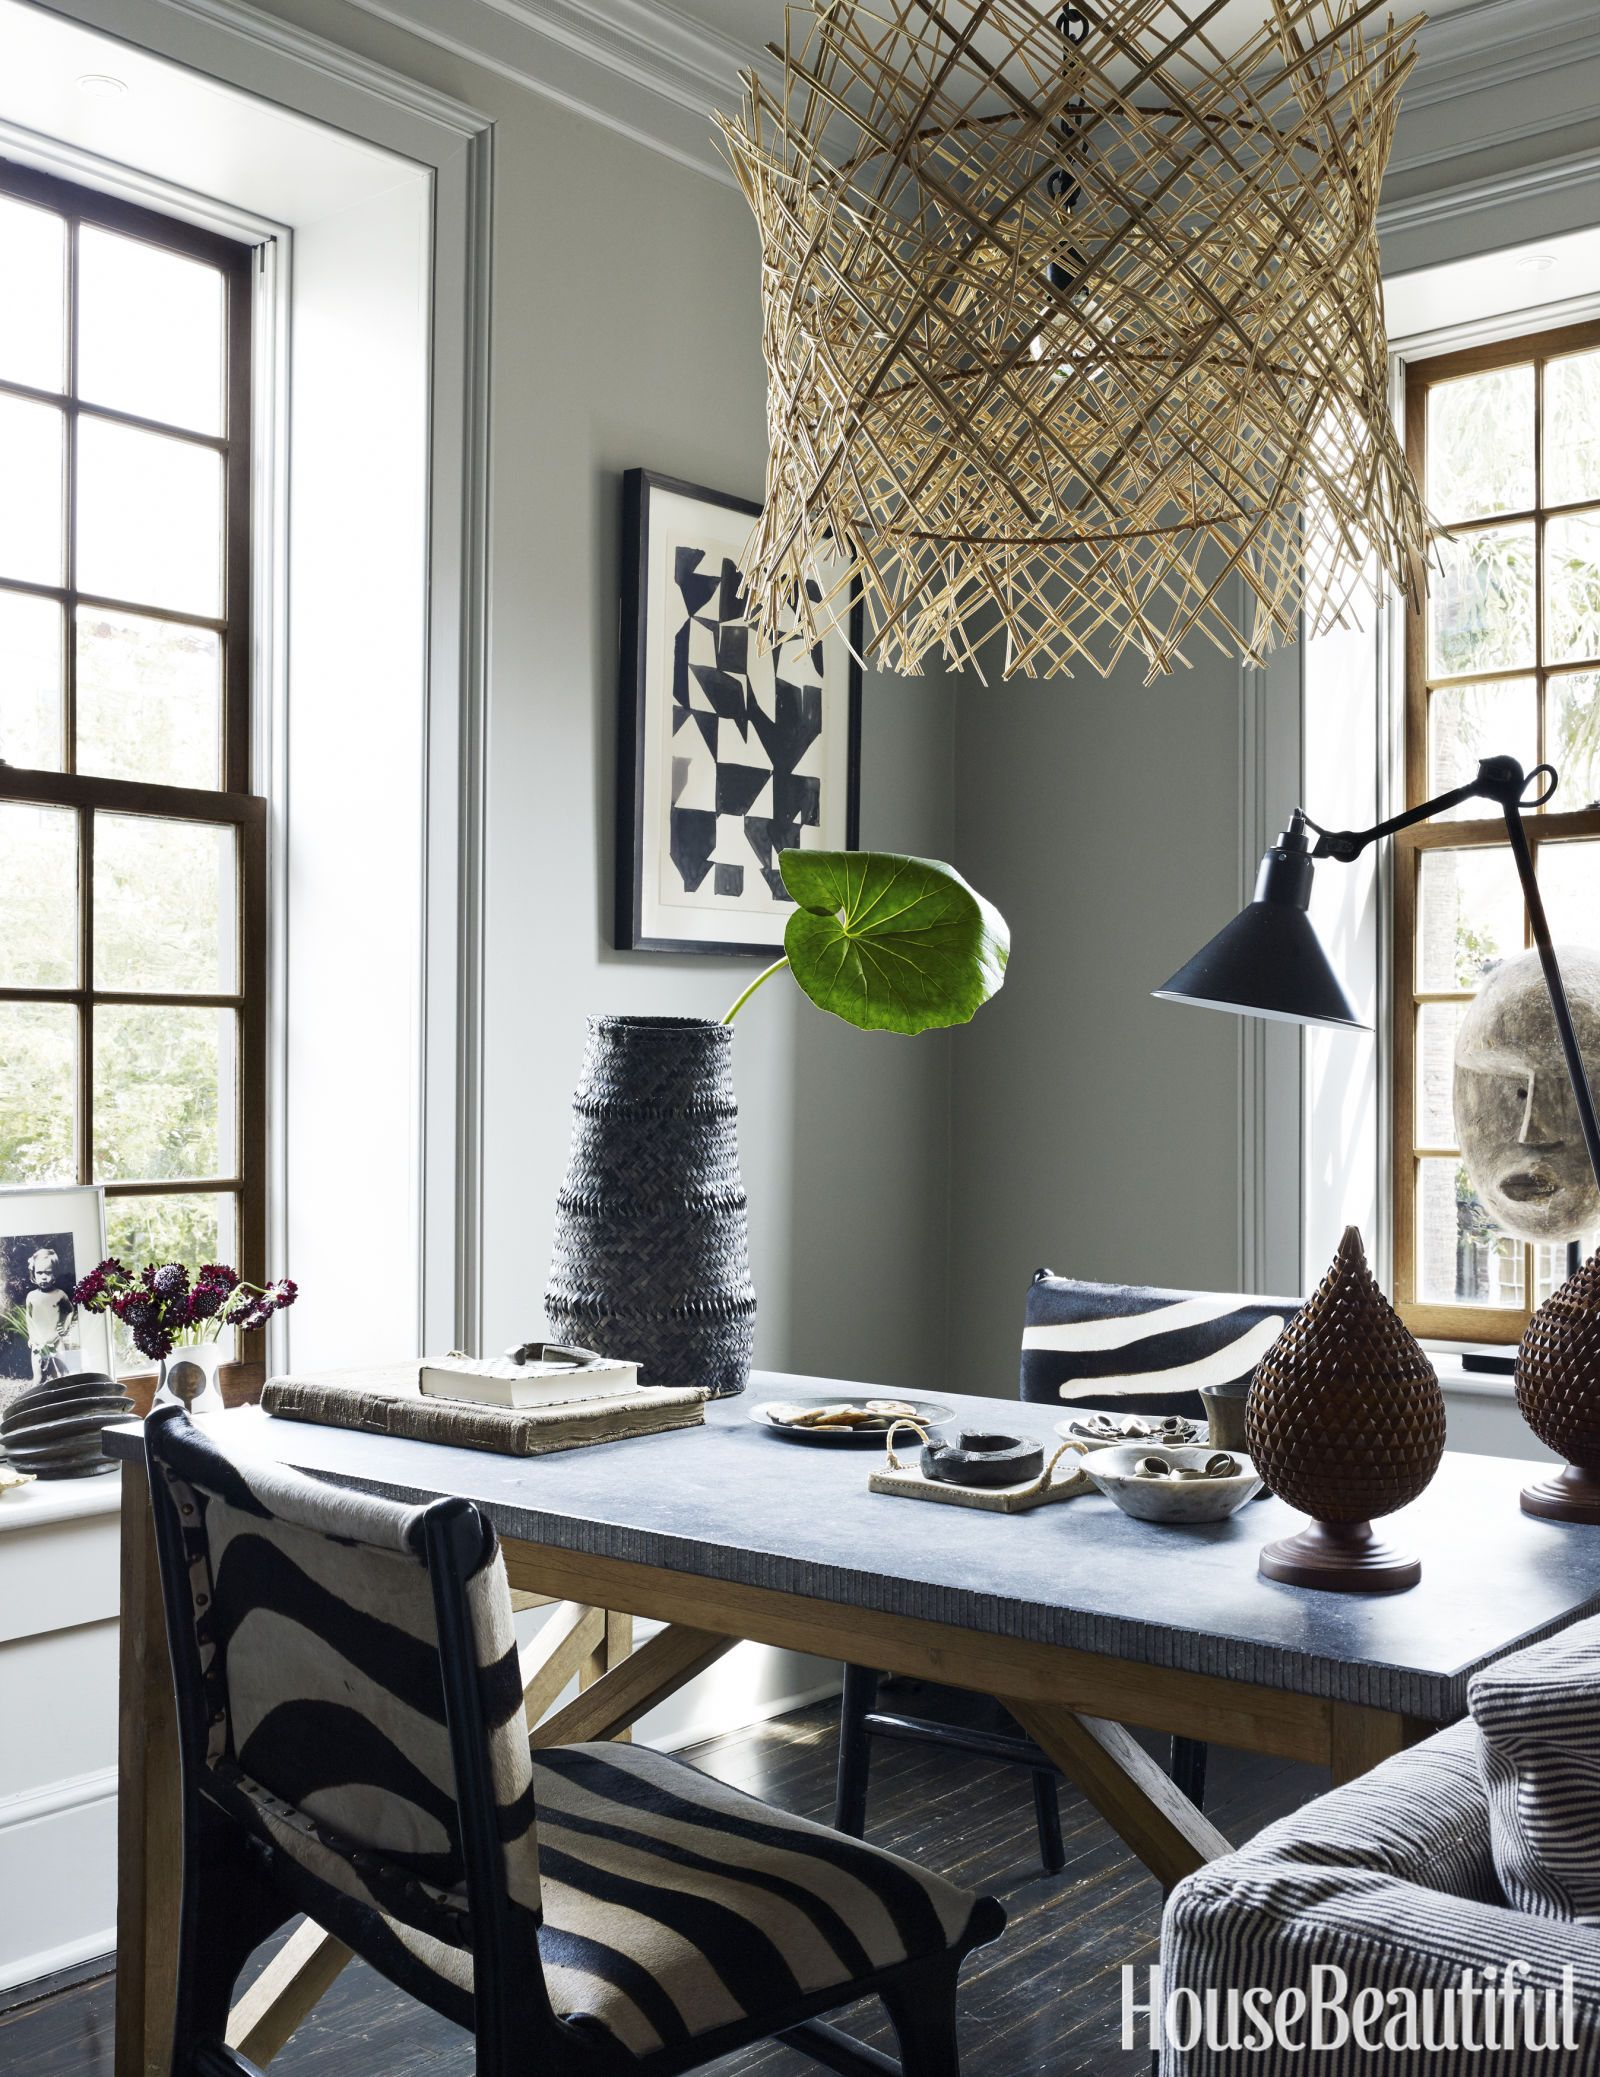 Home Office The Black And White Motif Extends Into Zebra Print Chairs Are Flea Market Finds From France